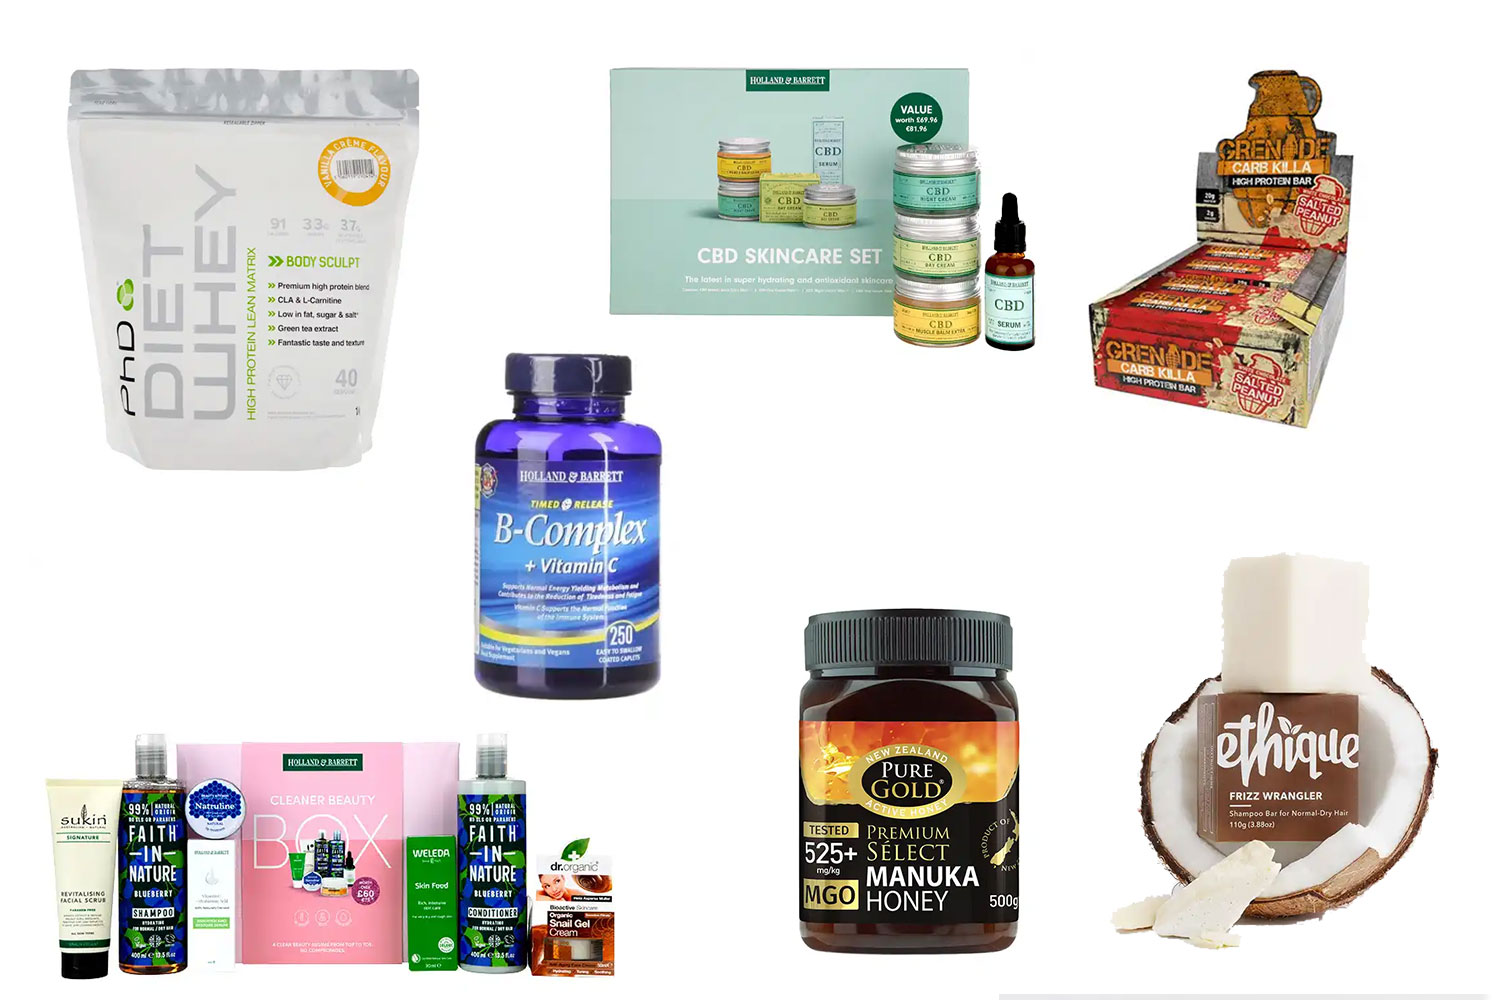 Holland and Barrett have offers across a whole range of products, from food to beauty